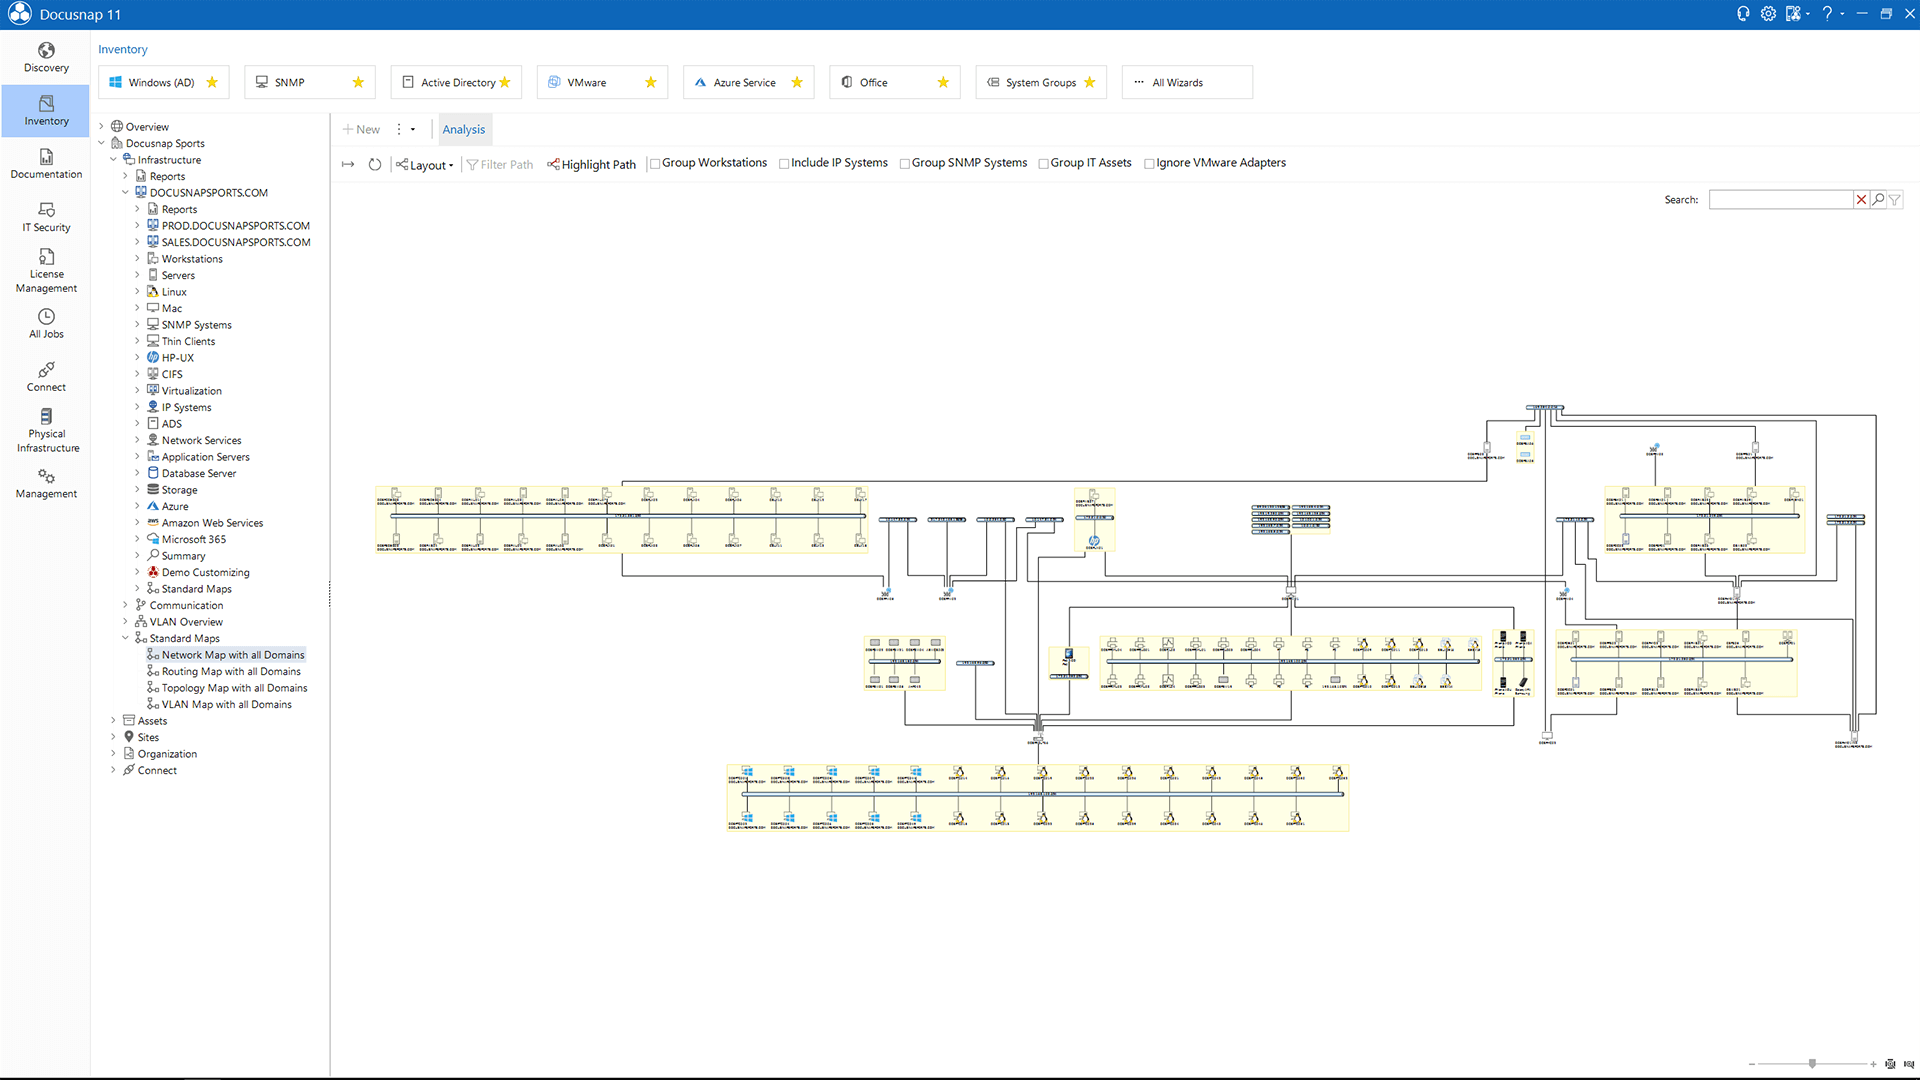 Screenshot: Layer 3 network map generated automatically by Docusnap